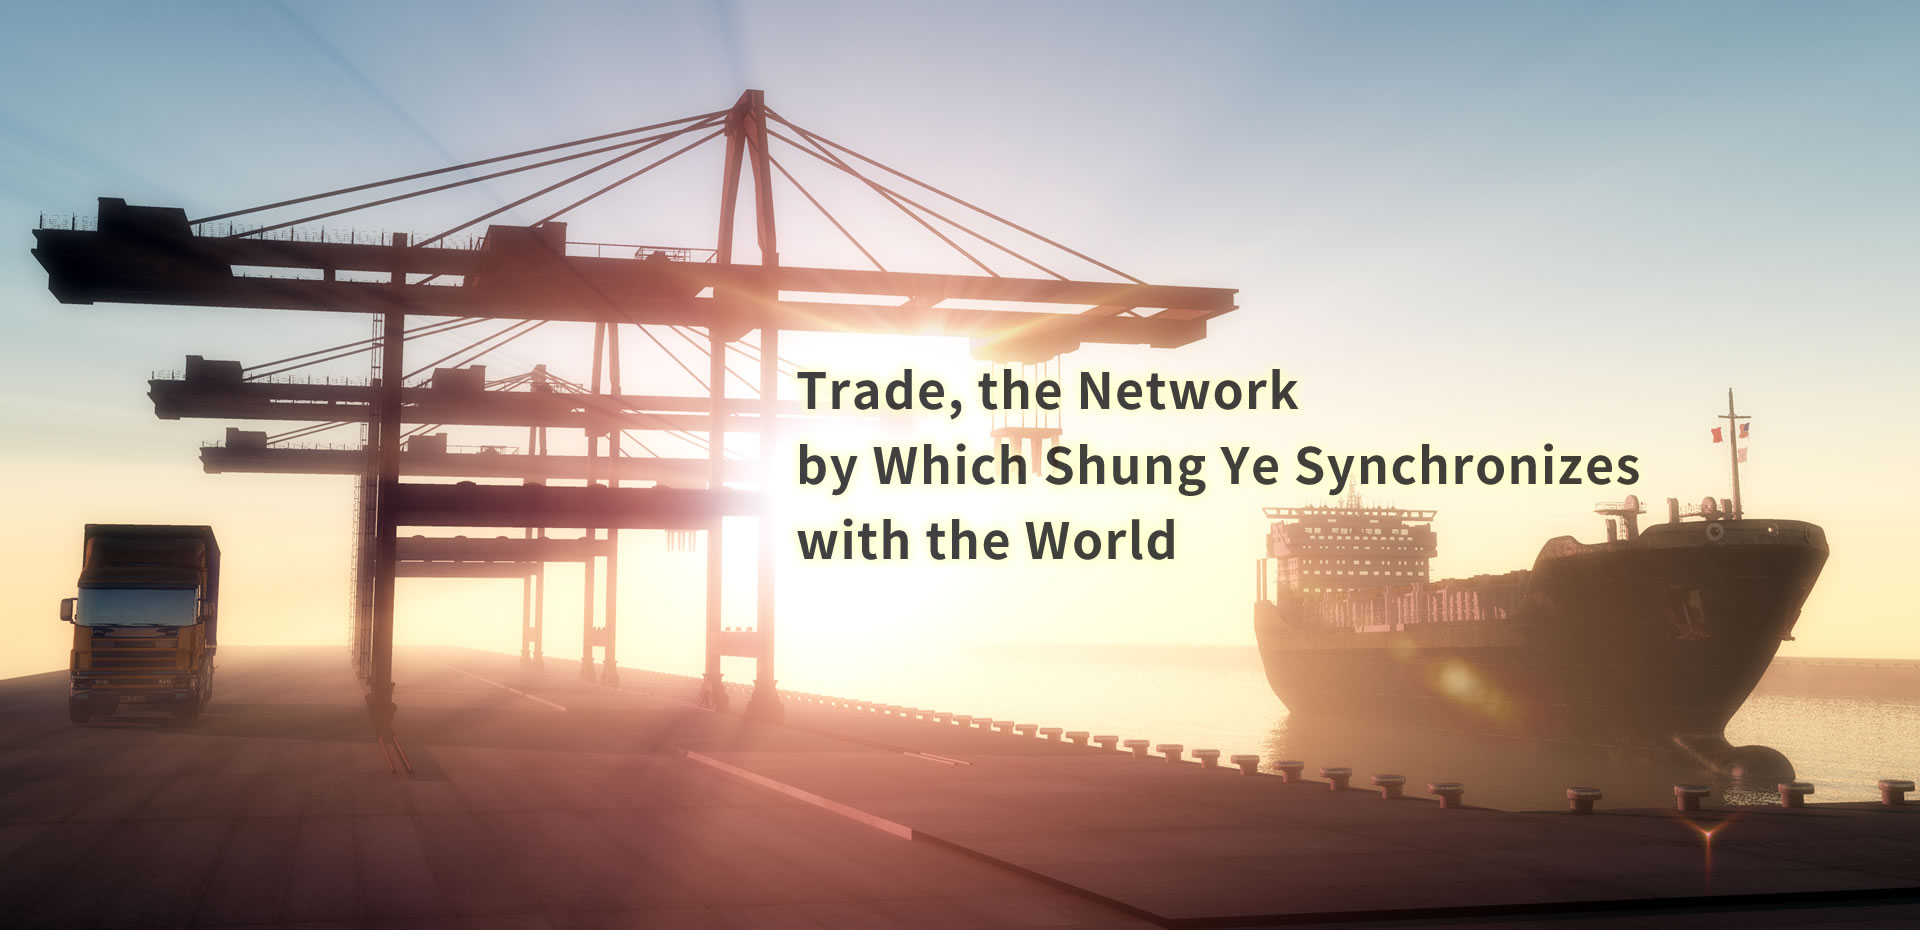 Trade, the Network by Which Shung Ye Synchronizes with the World